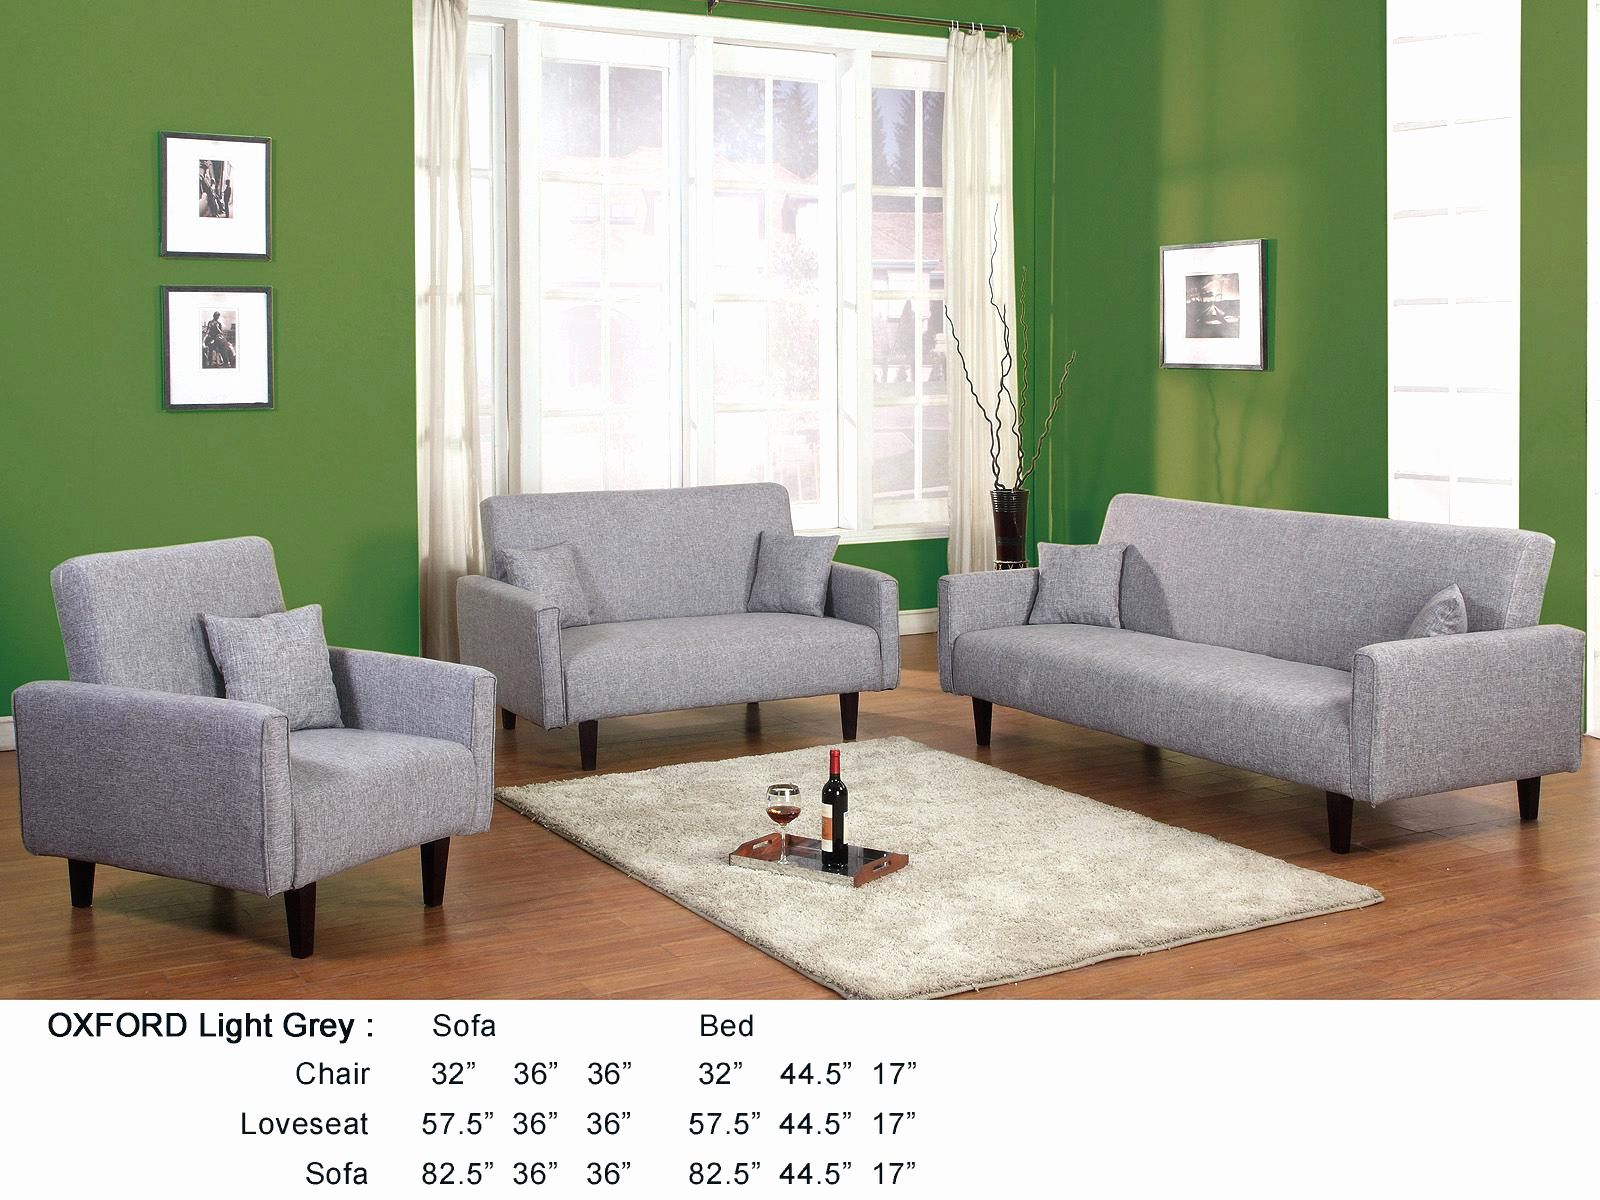 Light Grey Sofa Covers Leather Sleep Sofas Inspirational Cover Art Luxury Decor Sectional With Chaise Living Room